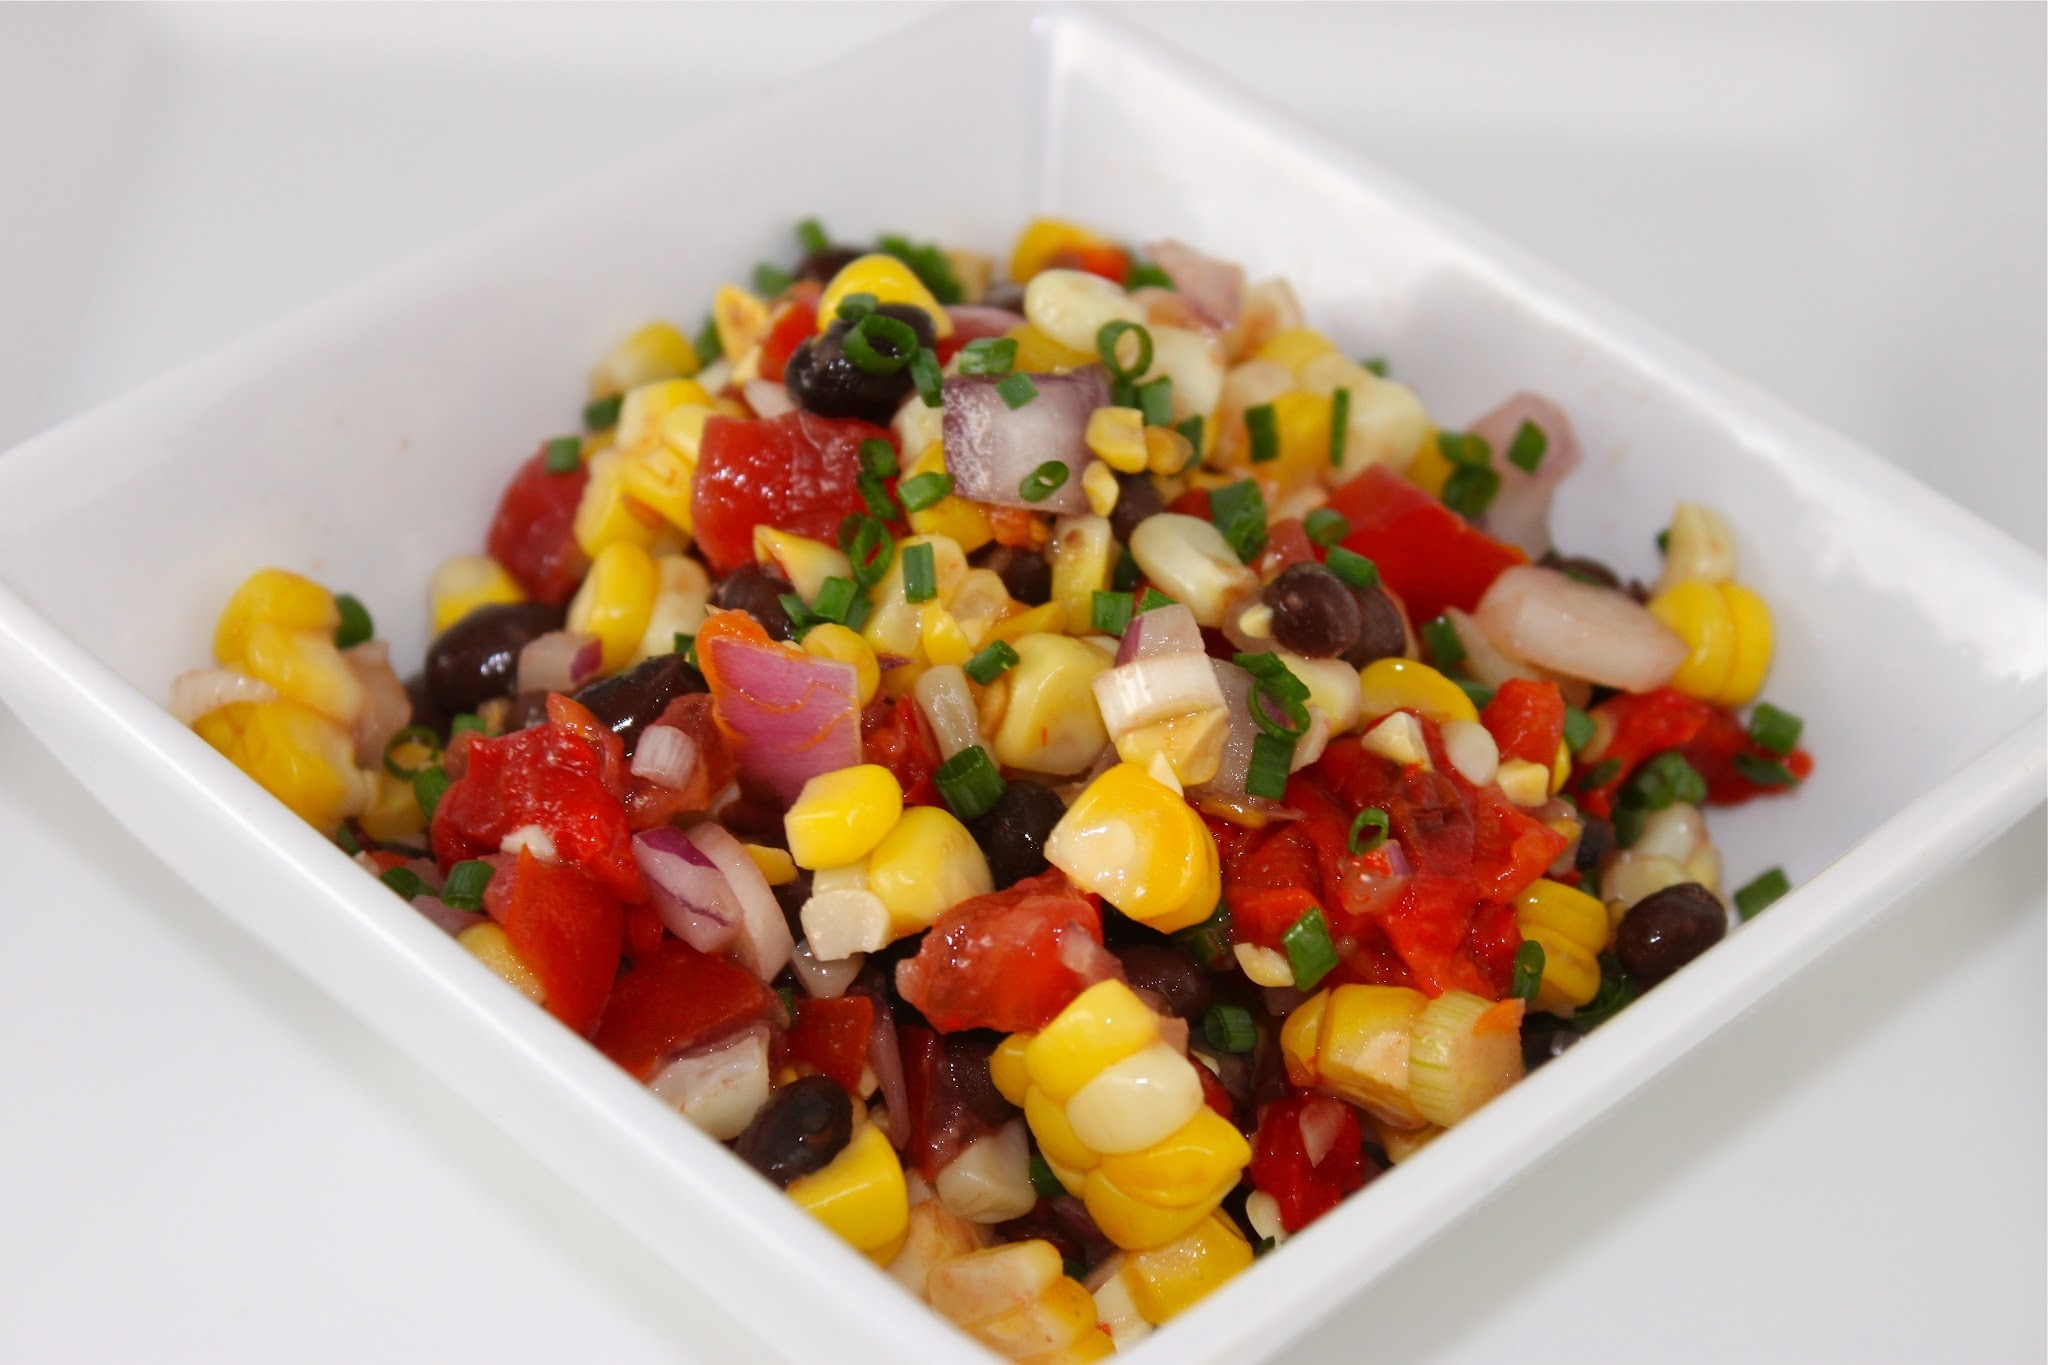 Grill~Roasted Corn Salad with Black Beans, Avocados and More!